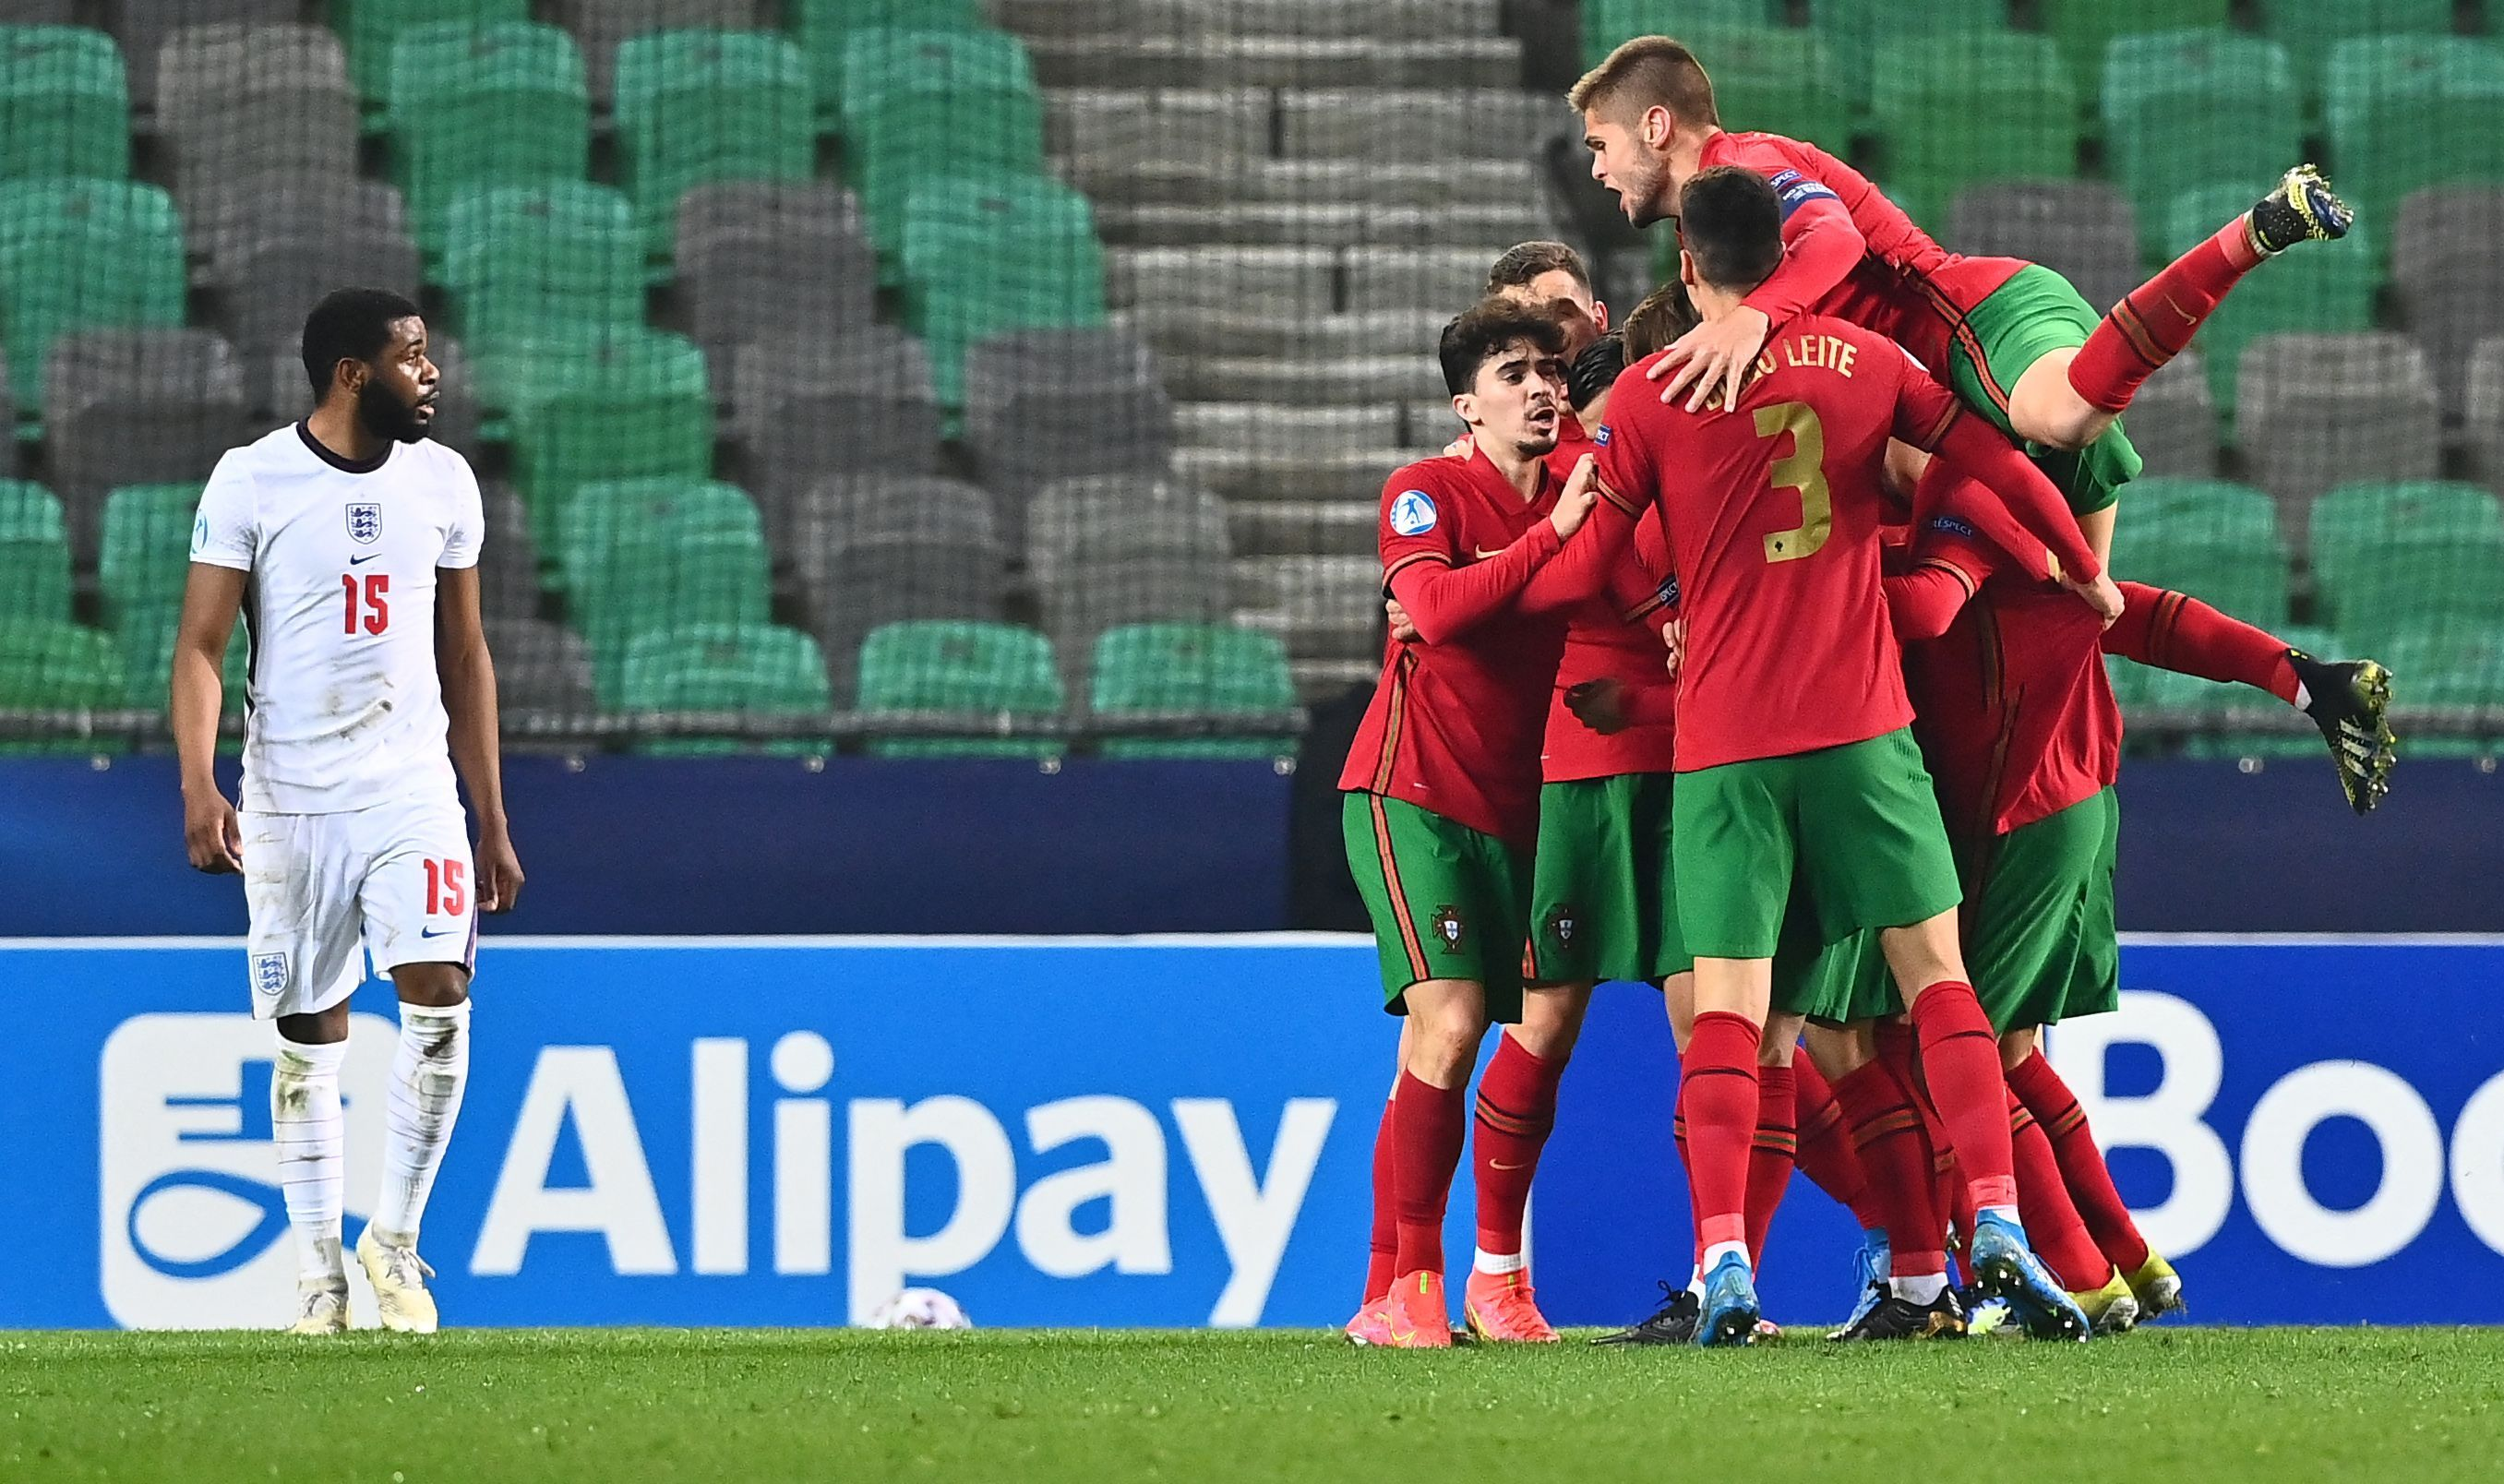 England Under-21s lose AGAIN as Aidy Boothroyd's side beaten by Portugal to leave them rock bottom of Euro 2021 group